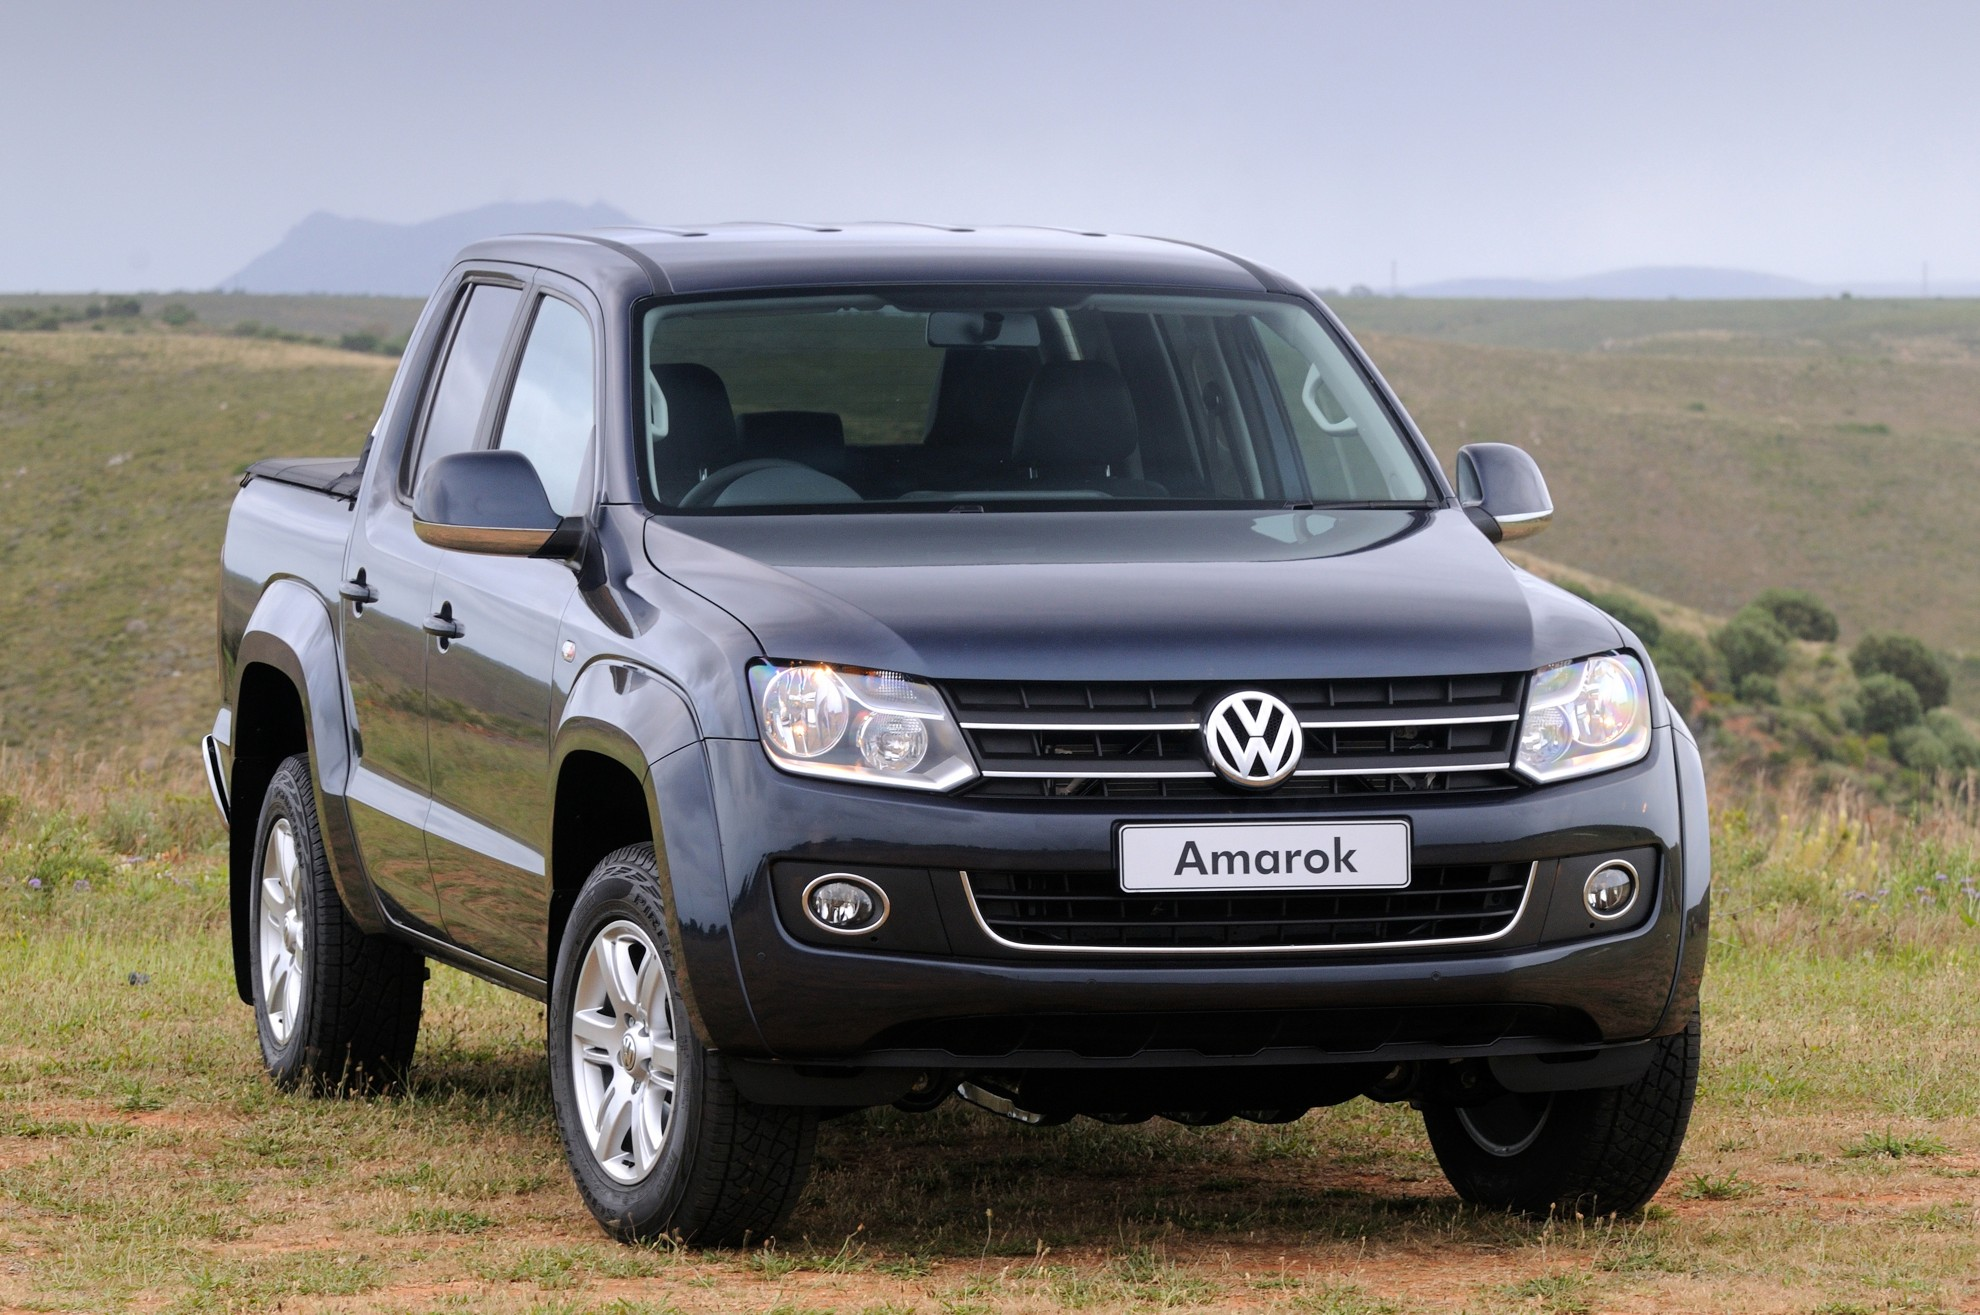 Volkswagen Amarok South Africa get's an Upgrade